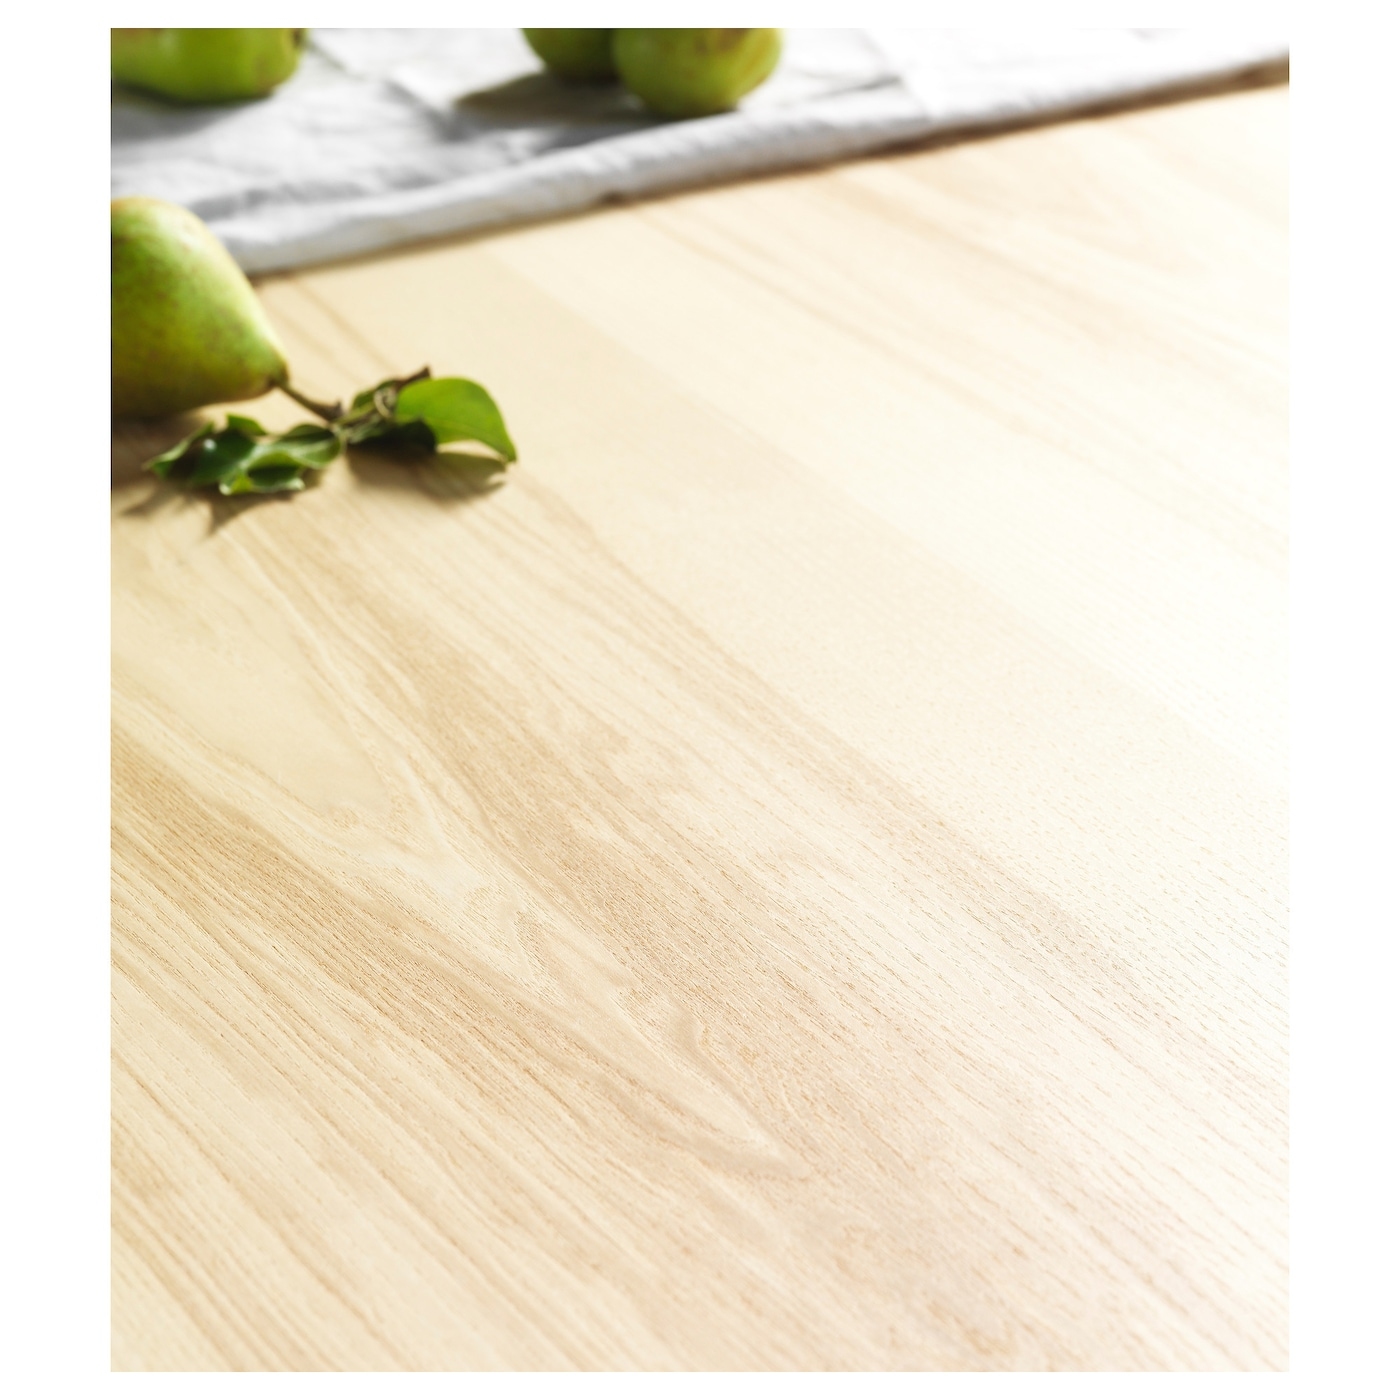 IKEA VÄSSAD bench Ash veneer is stain resistant and easy to keep clean.